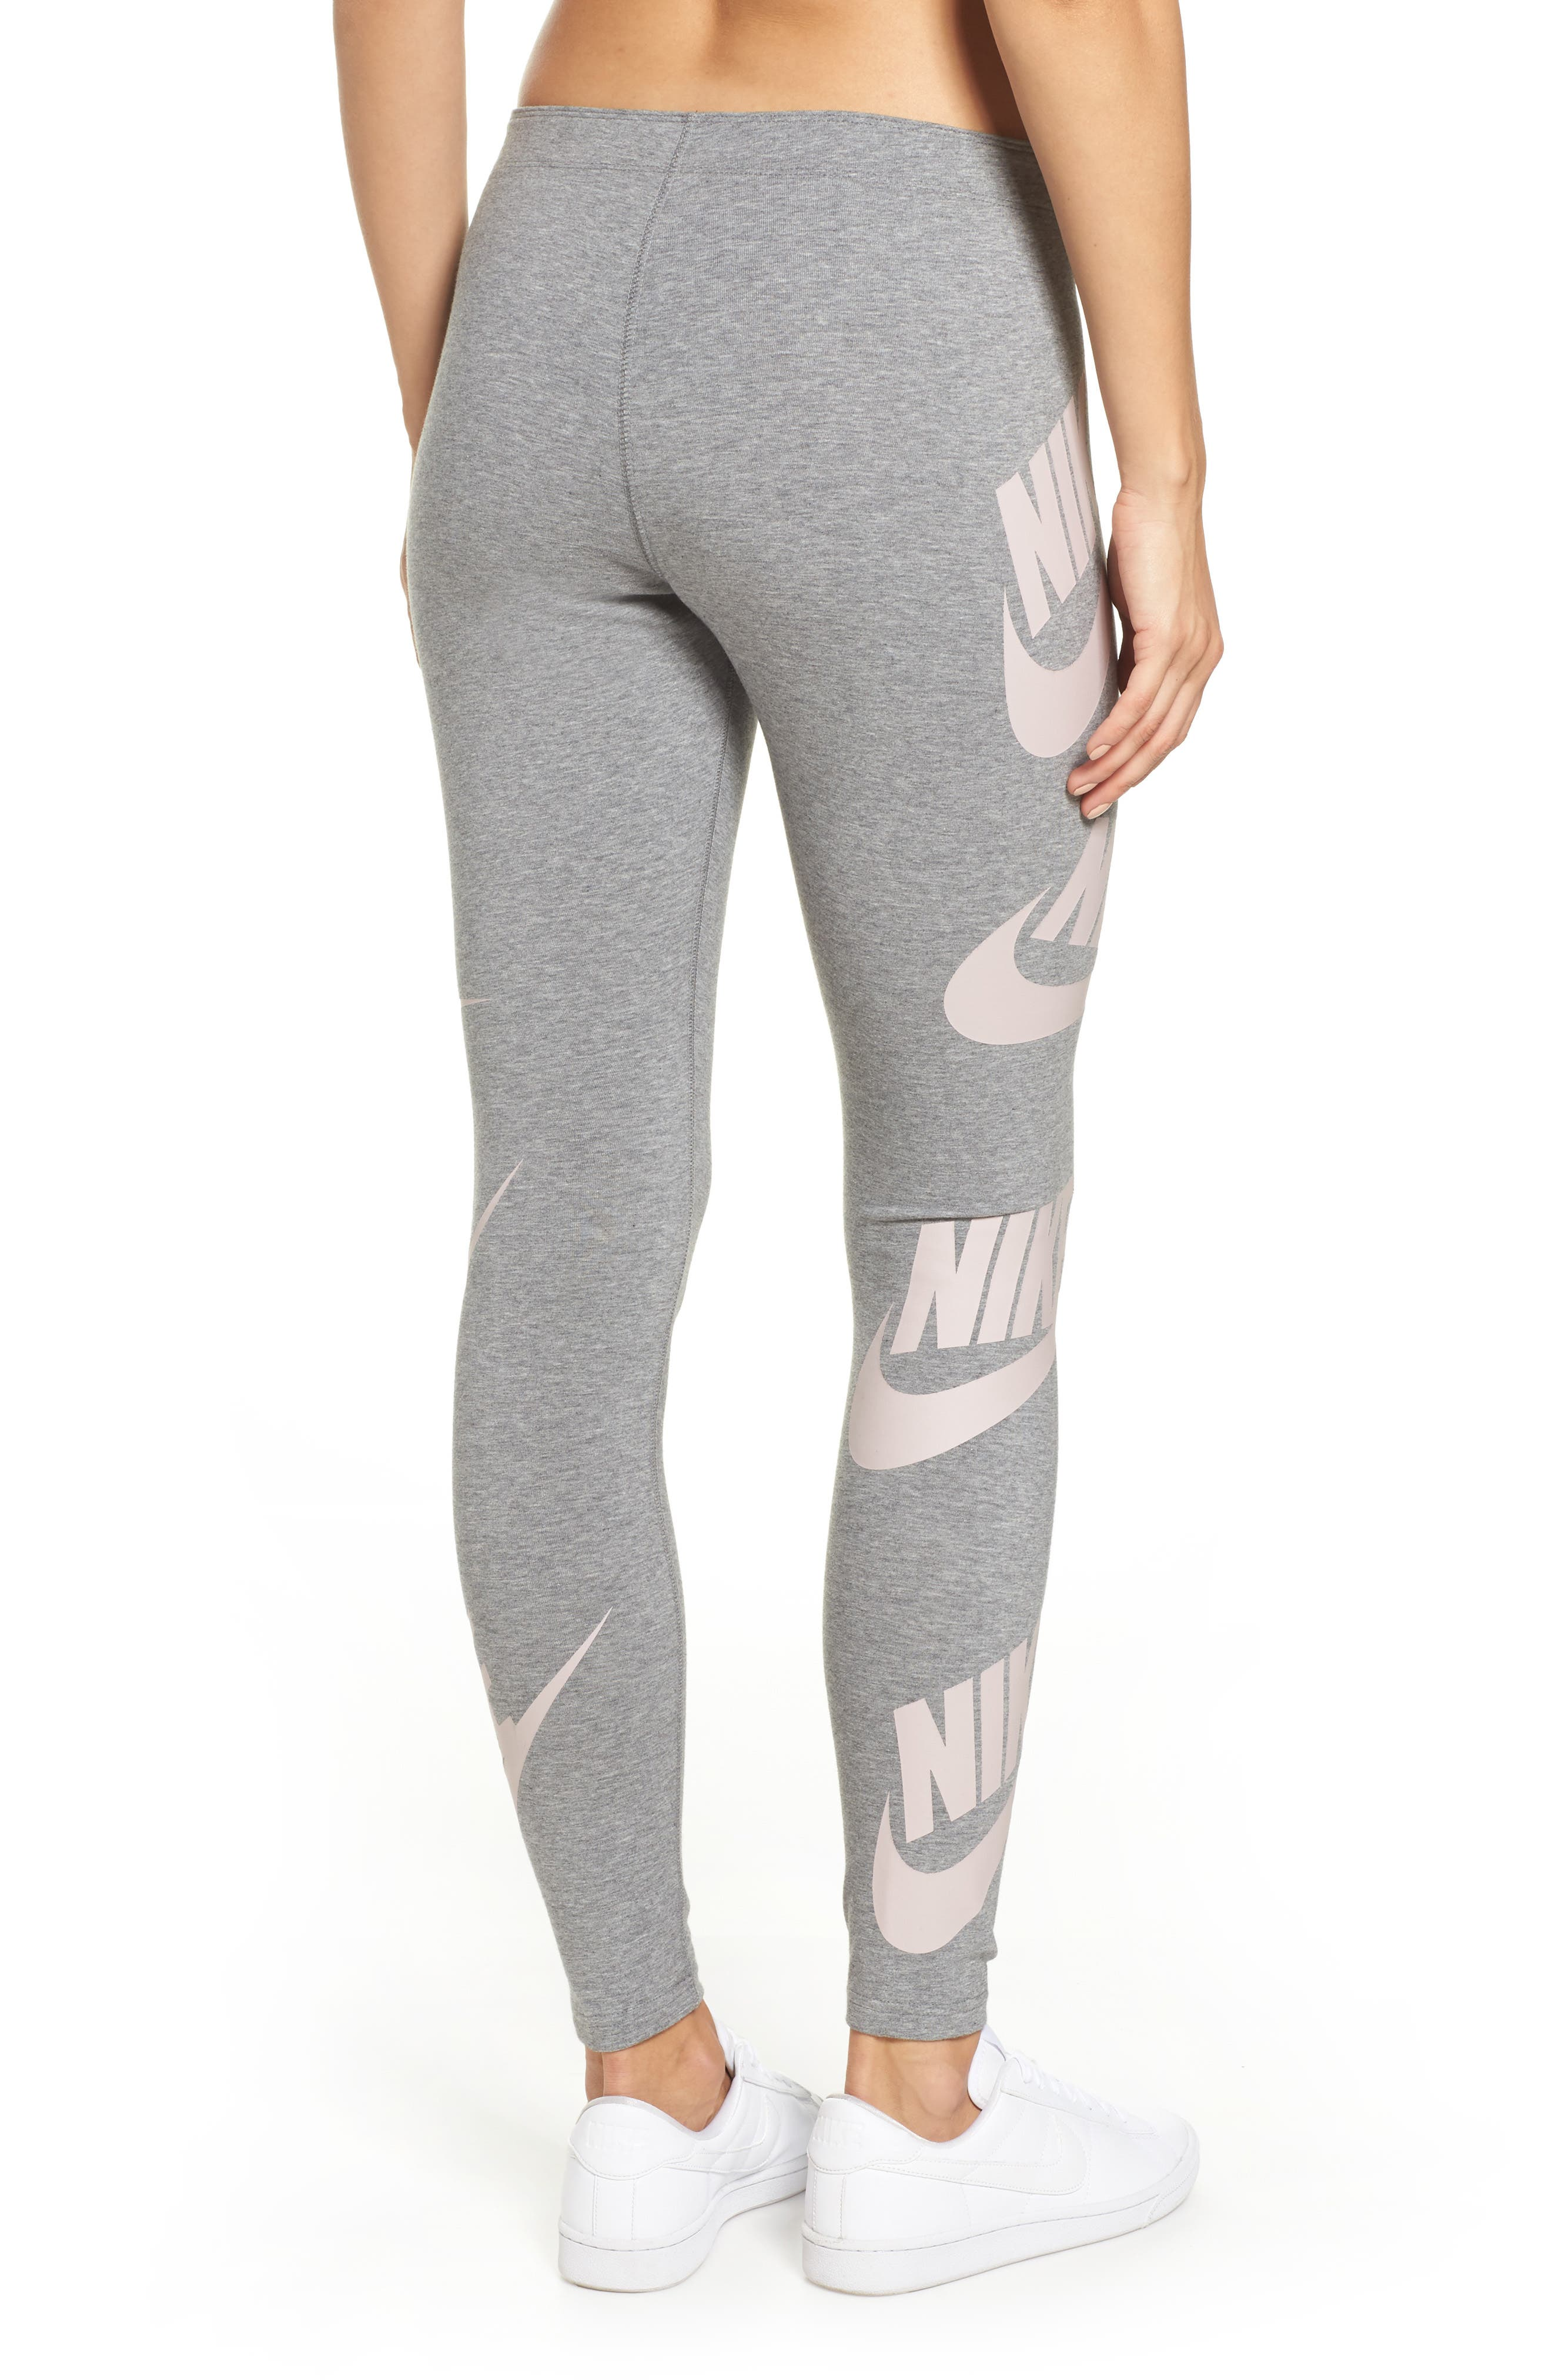 Sportswear Graphic Leggings,                             Alternate thumbnail 7, color,